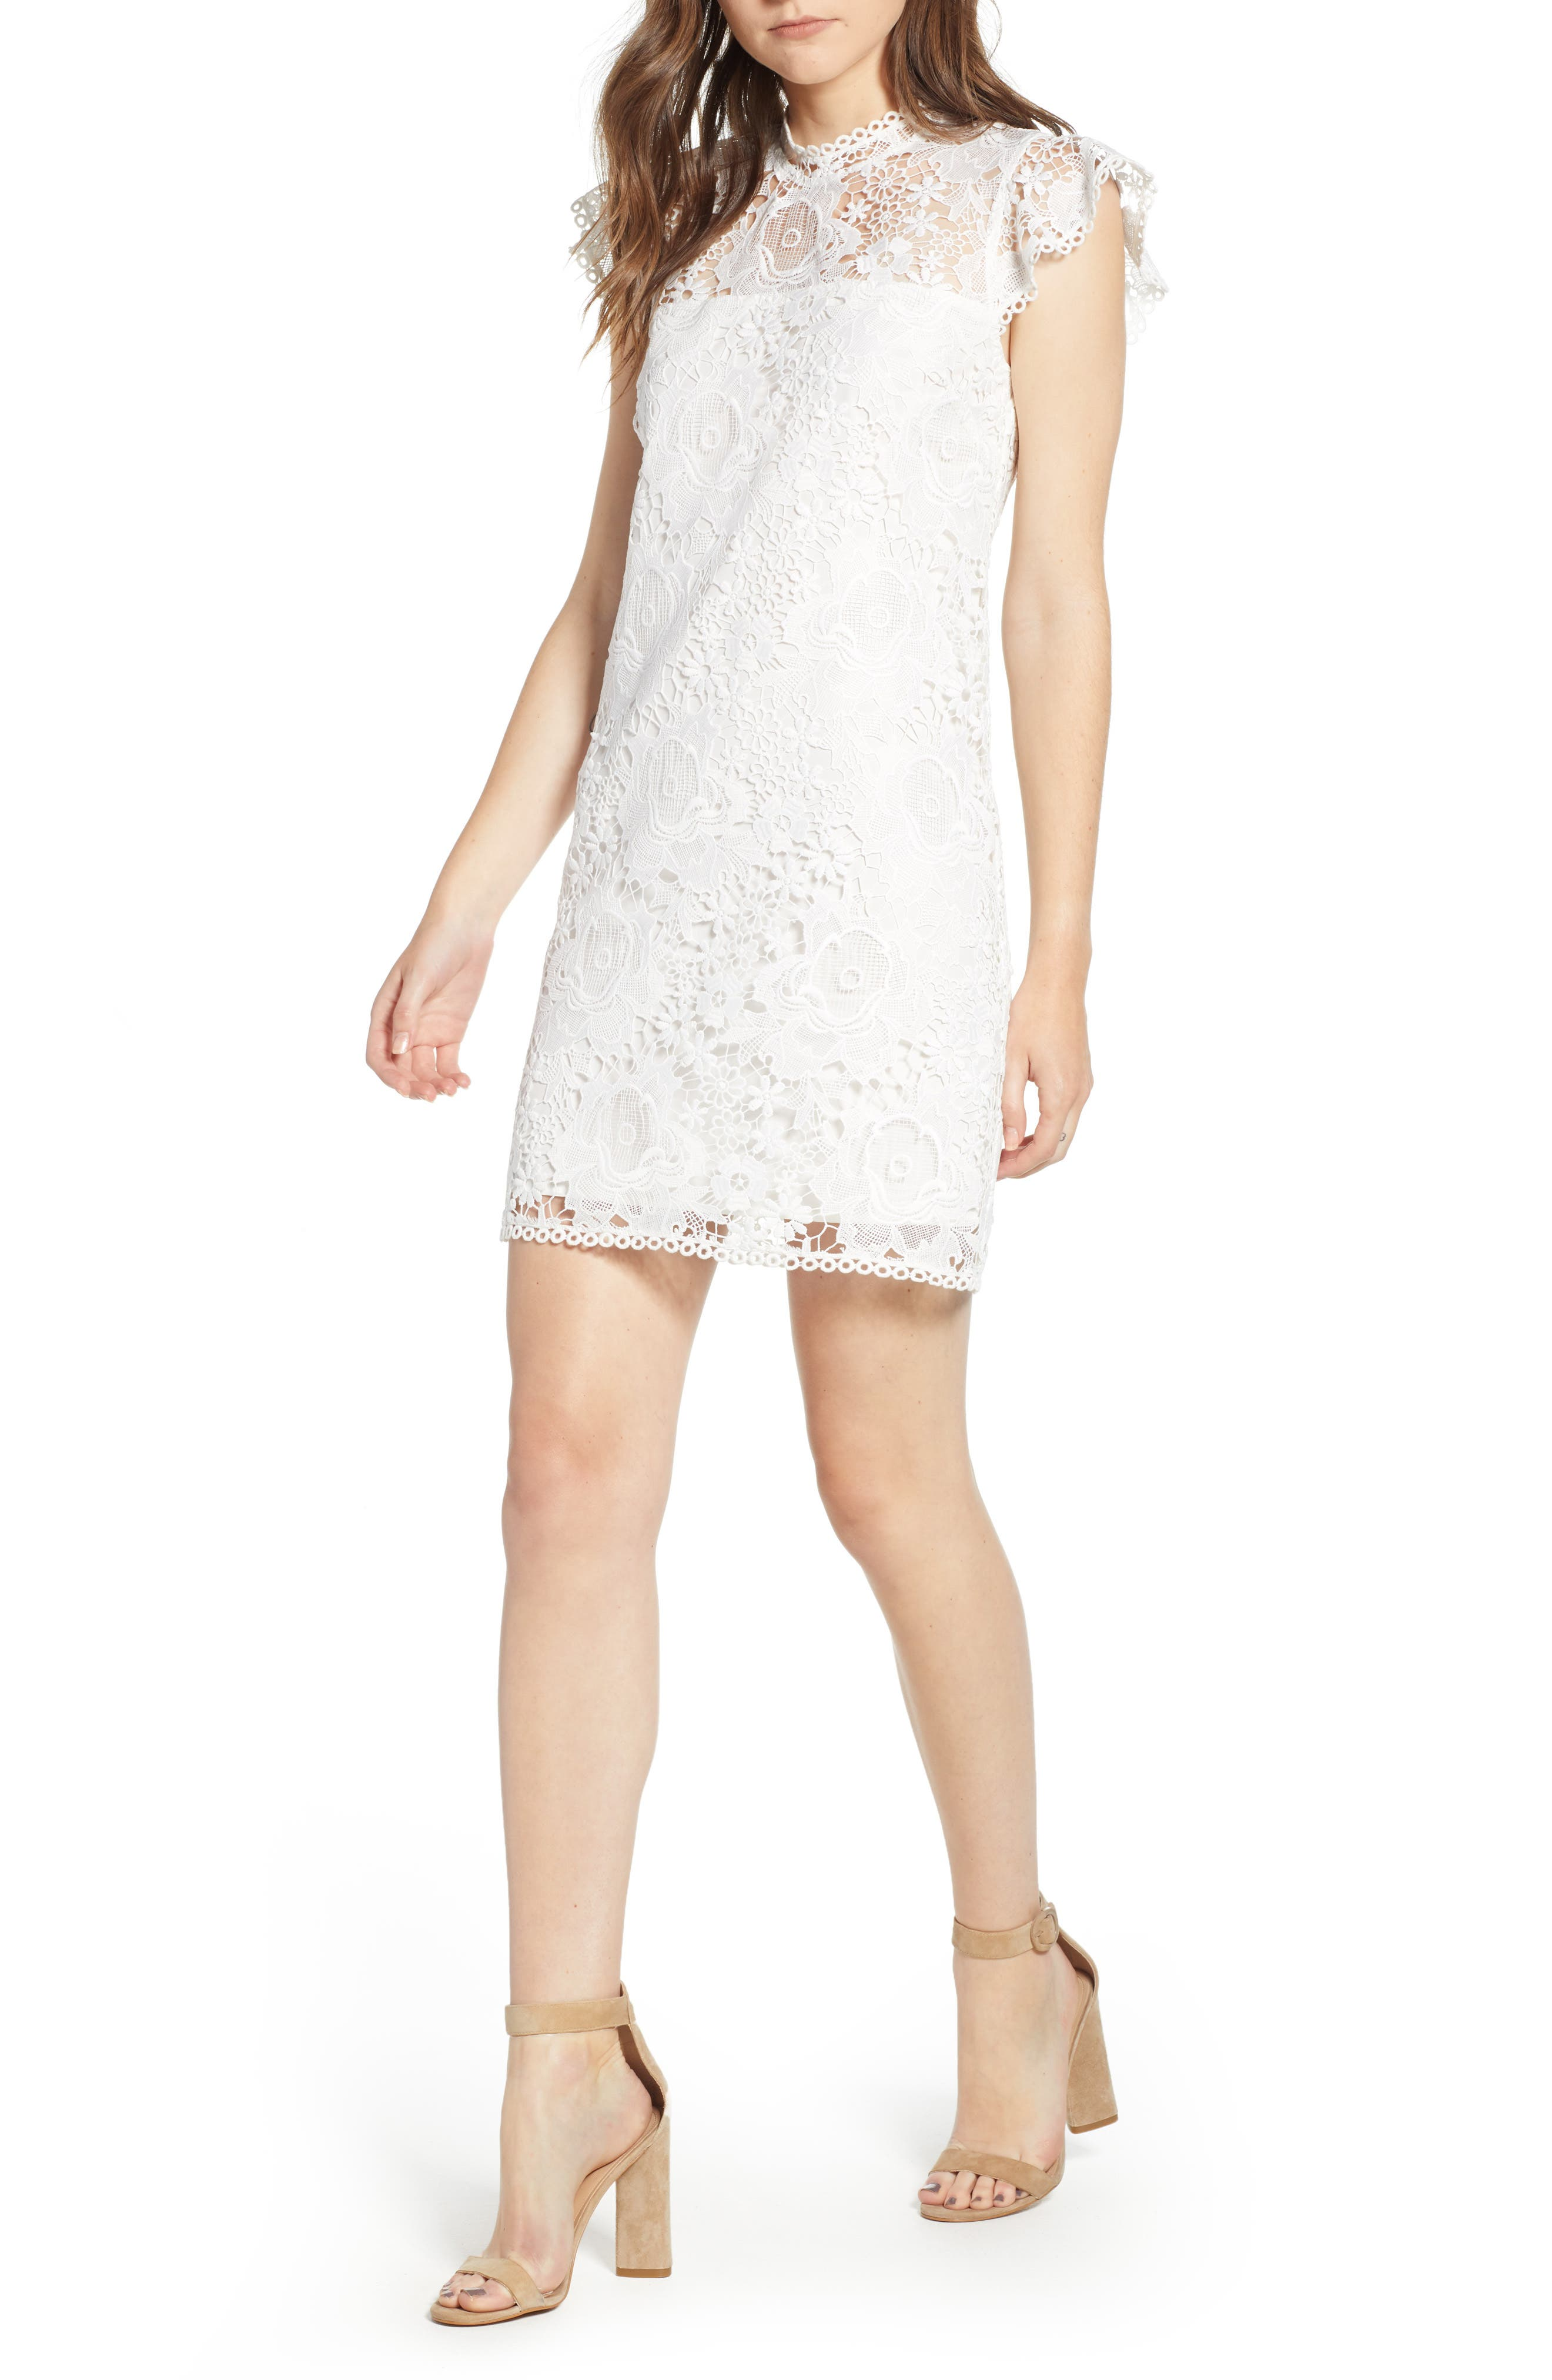 Cupcakes And Cashmere Floral Lace Shift Dress, White